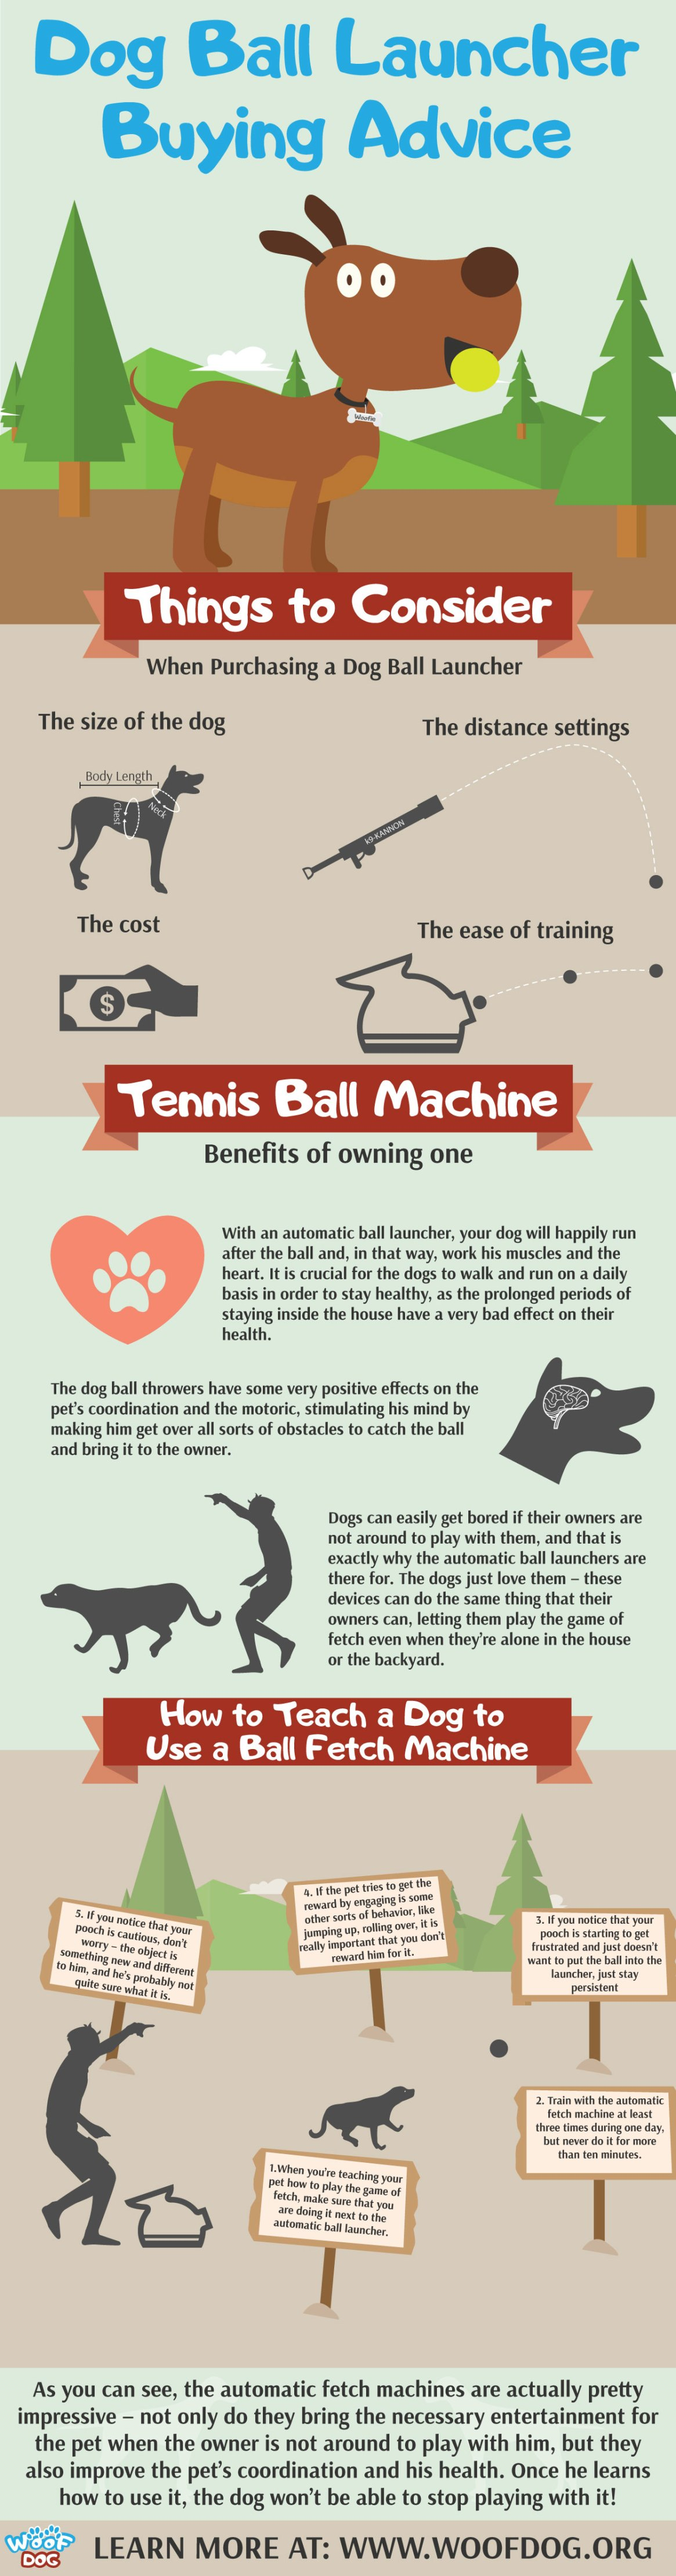 Dog Ball Launcher Buying Guide